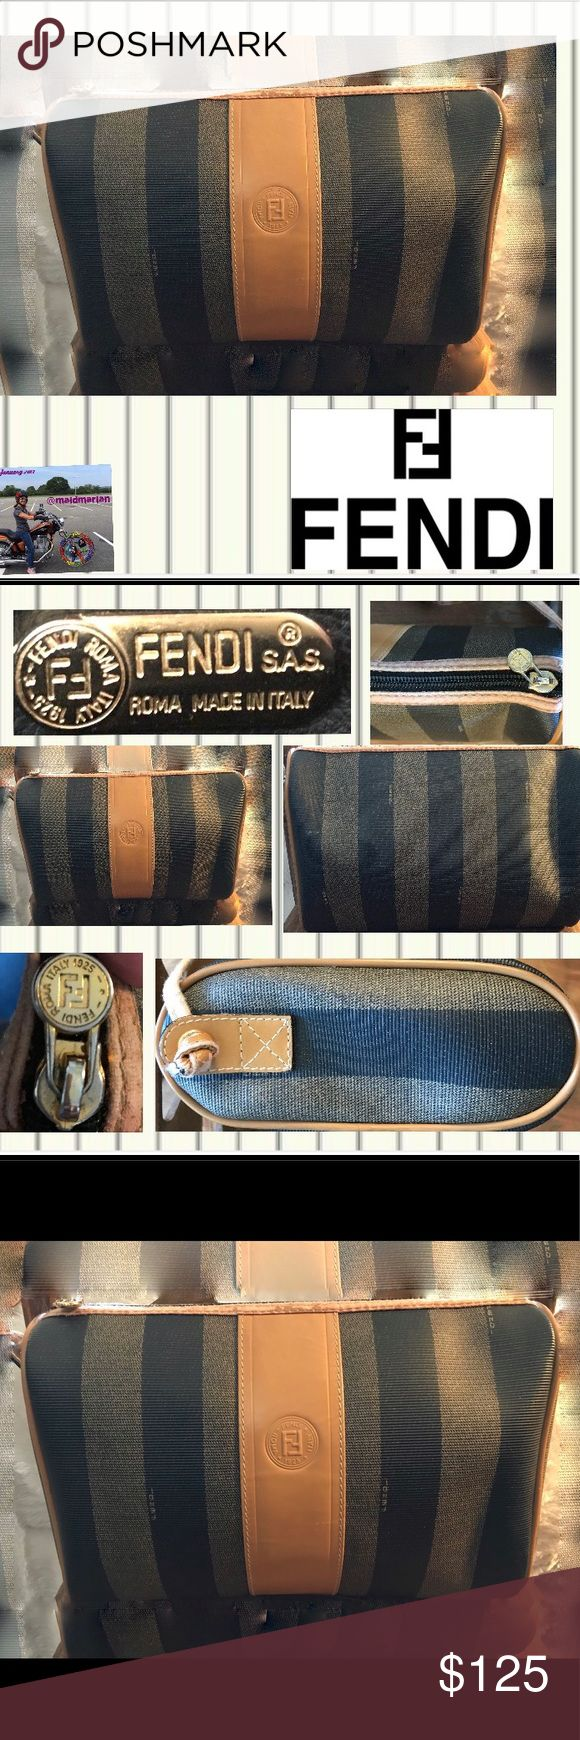 VTG FENDI SHOULDER BAG VTG FENDI SHOULDER BAG. Bag and interior in perfect condition. Leather trim around zipper and on strap has worn off, as shown in pictures and reflected in price. Circa' 80-83 which I've learned is when Fendi began to put serial numbers inside bag across from the brass creed. I've also learned that Fendi bags may be made from PVC & leather. All brass hardware. This bag can be restored to perfection by a professional. Dust bag but no certificate. Any questions please ask…